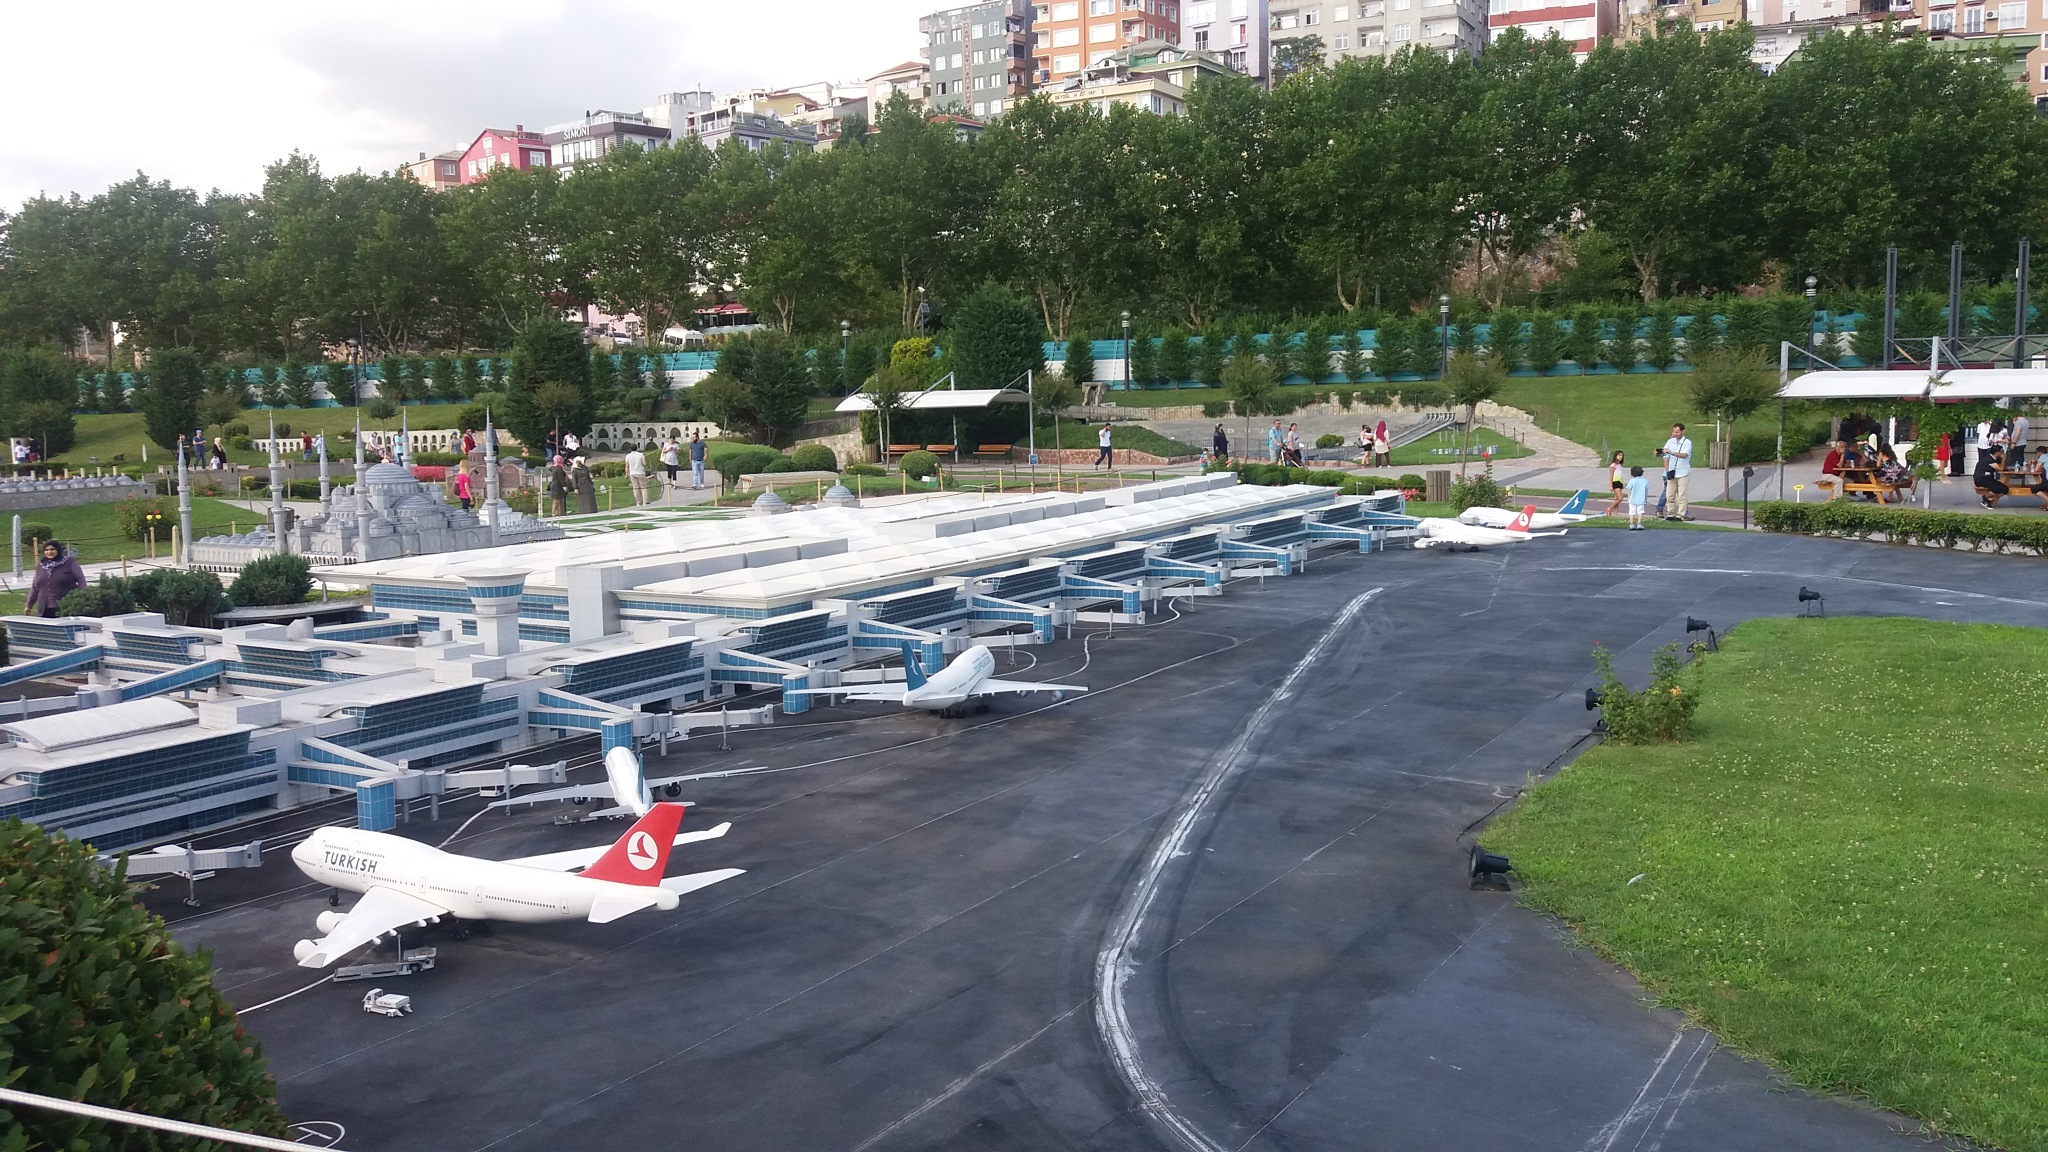 MiniaTurk Ataturk Airport by Mohamed Fouad